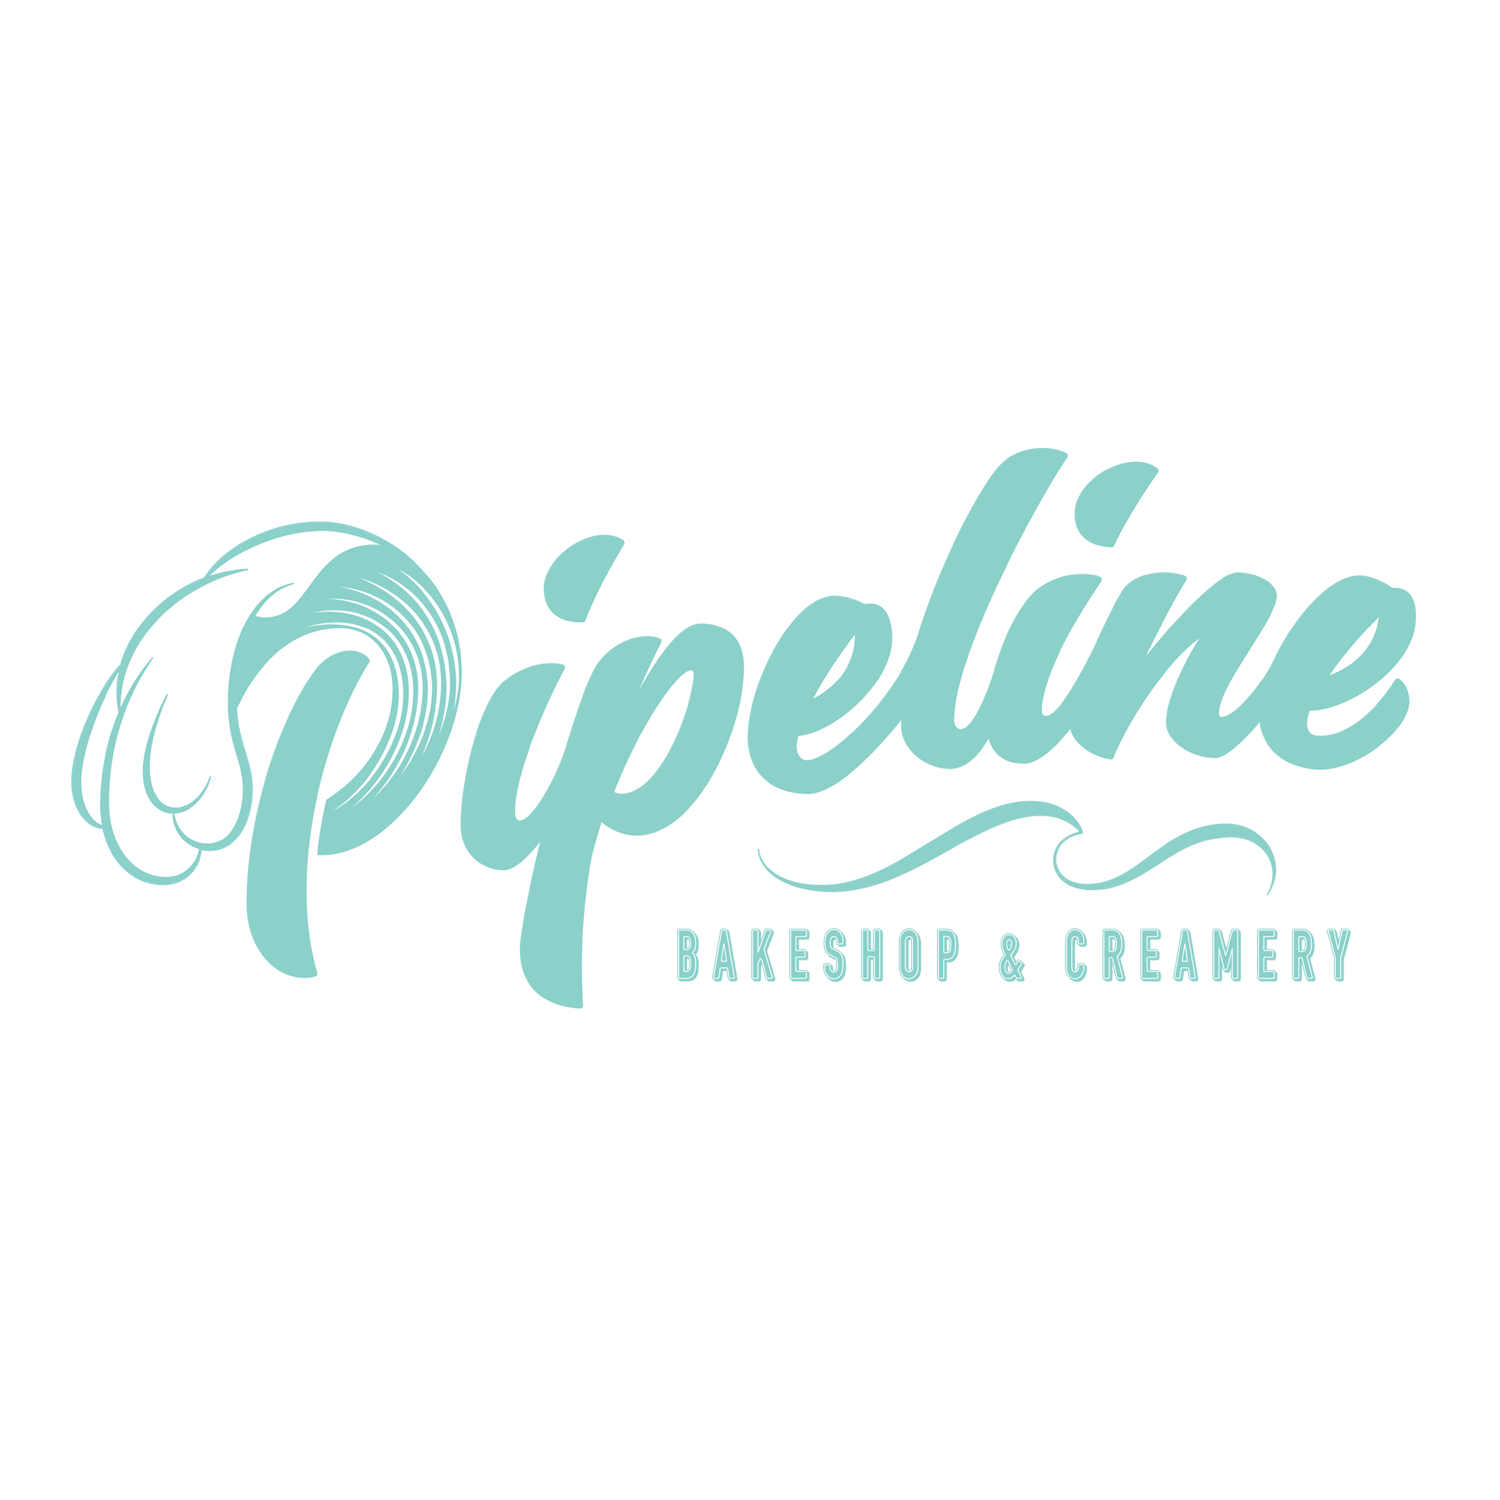 Pipeline Bakeshop & Creamery | Hawaiiʻs local neighborhood bakery making everything from scratch.